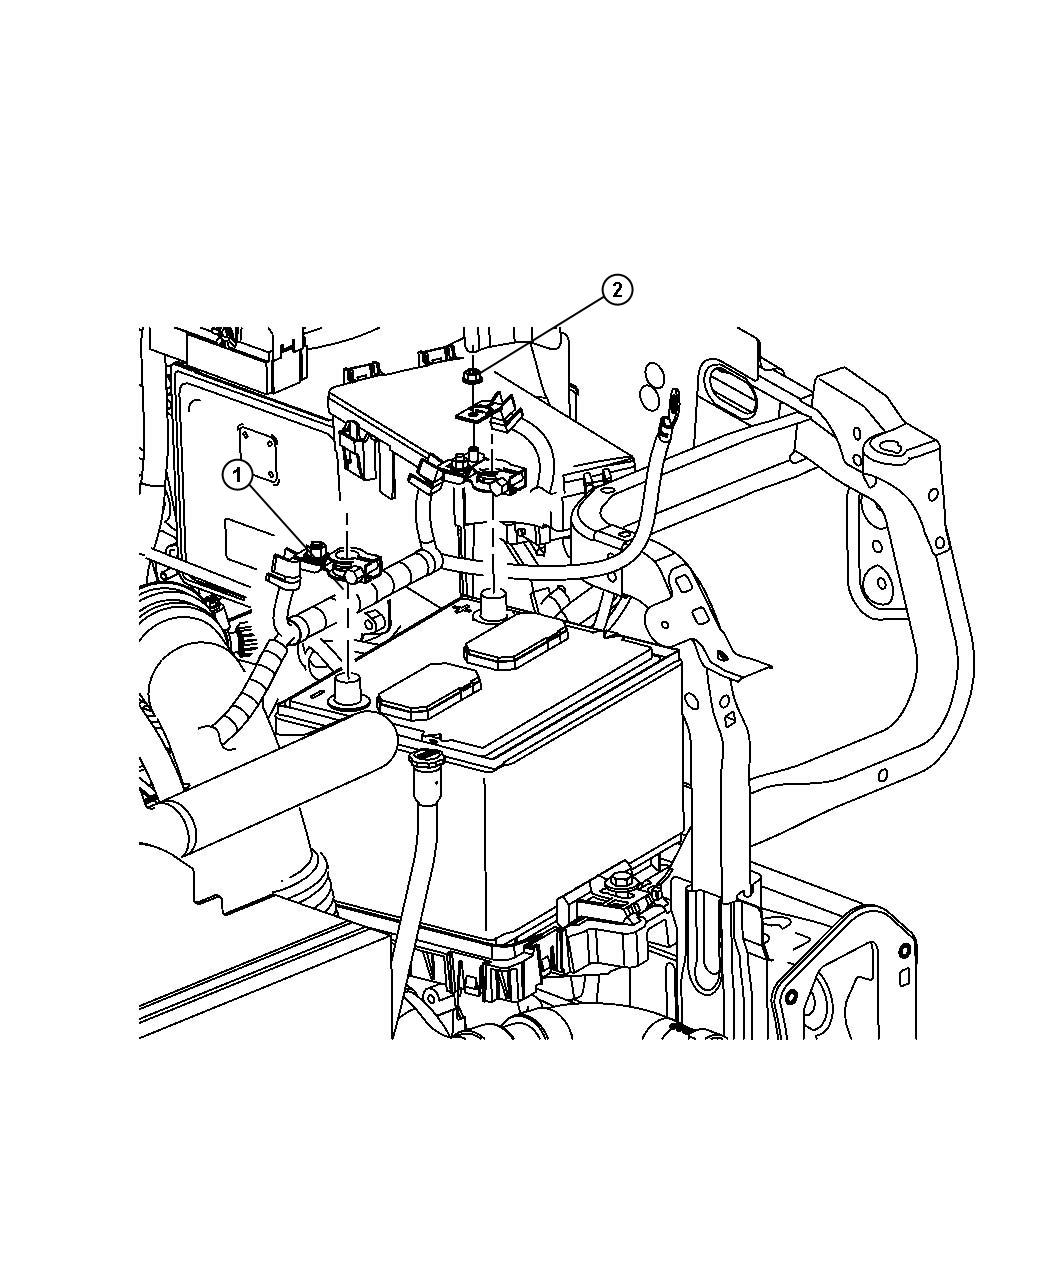 Jeep Patriot Wiring. Battery. [power train parts module